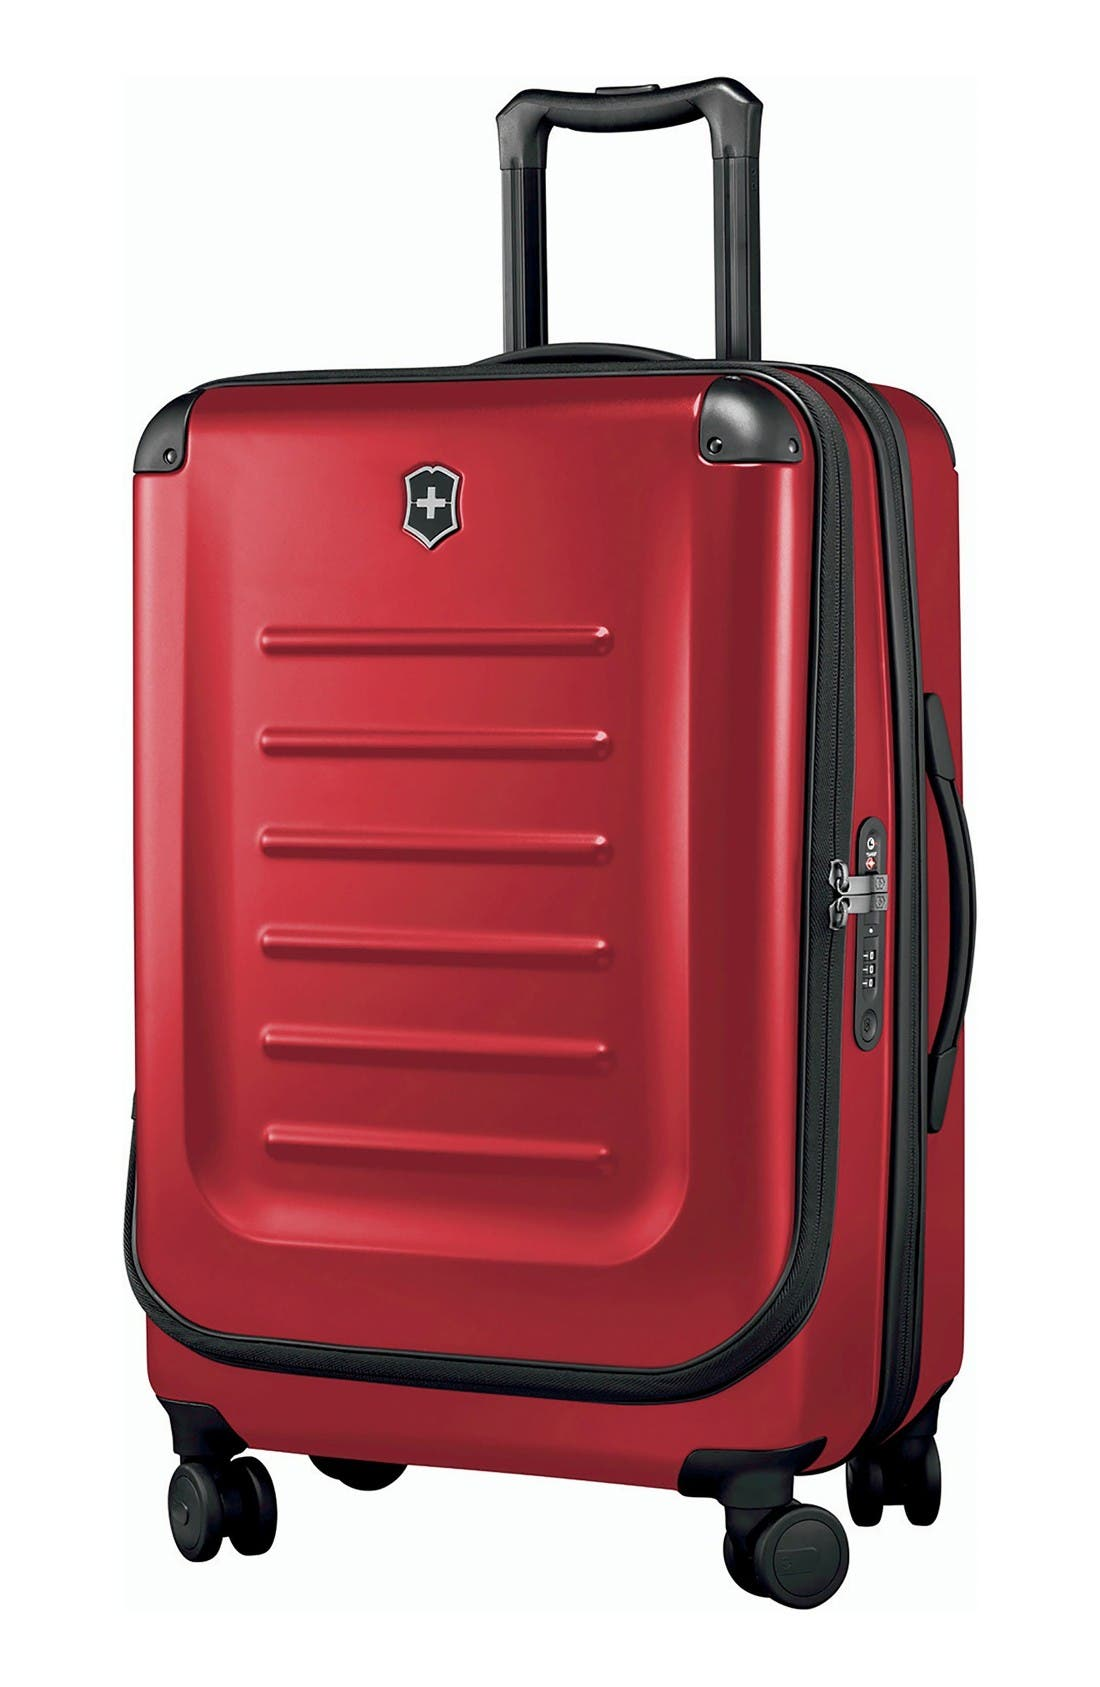 Alternate Image 1 Selected - Victorinox Swiss Army® Spectra 2.0 Hard Sided Rolling 27-Inch Travel Suitcase